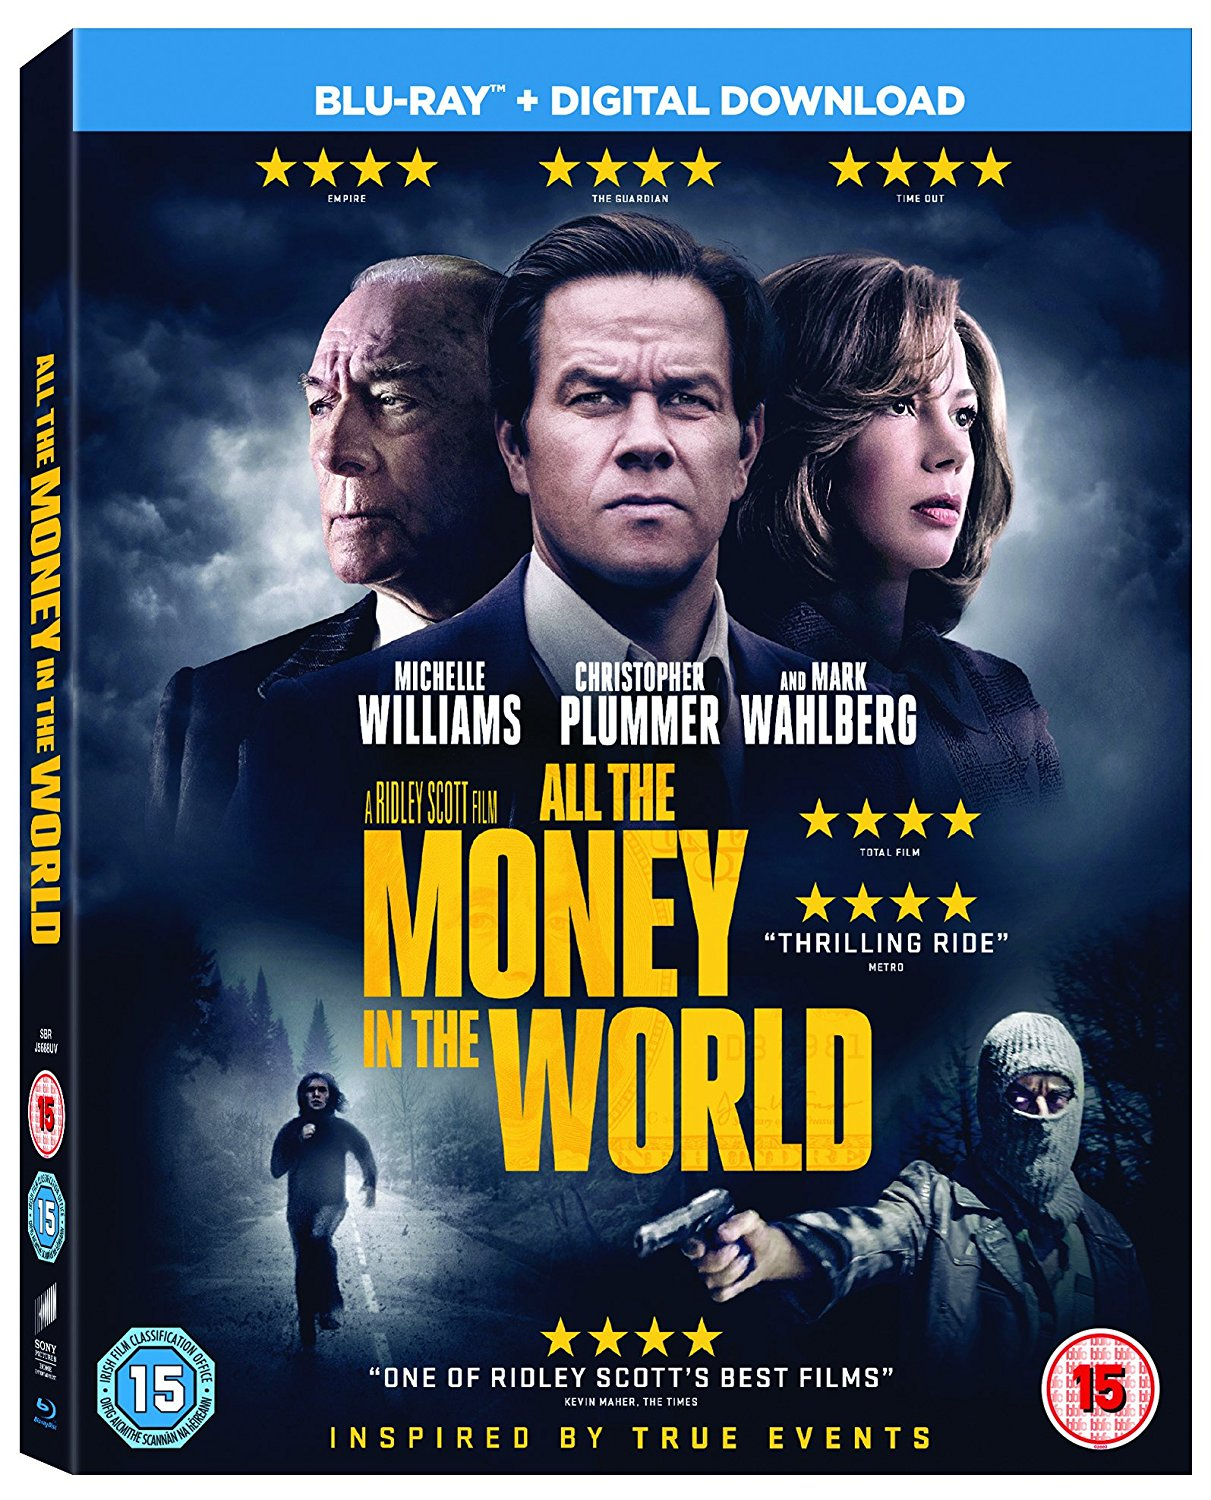 All The Money In The World (Blu-Ray) | Papercut